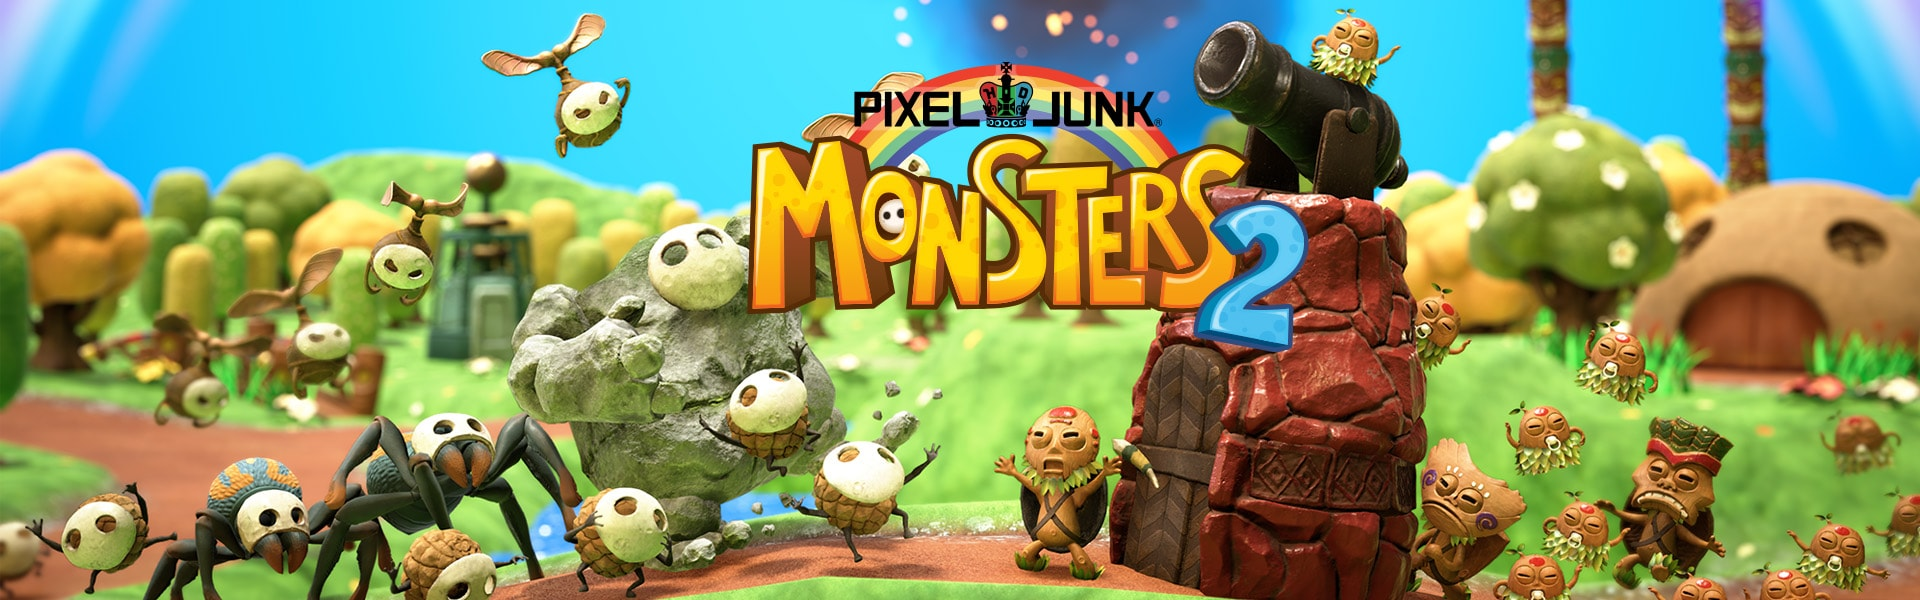 PixelJunk™ Monsters 2